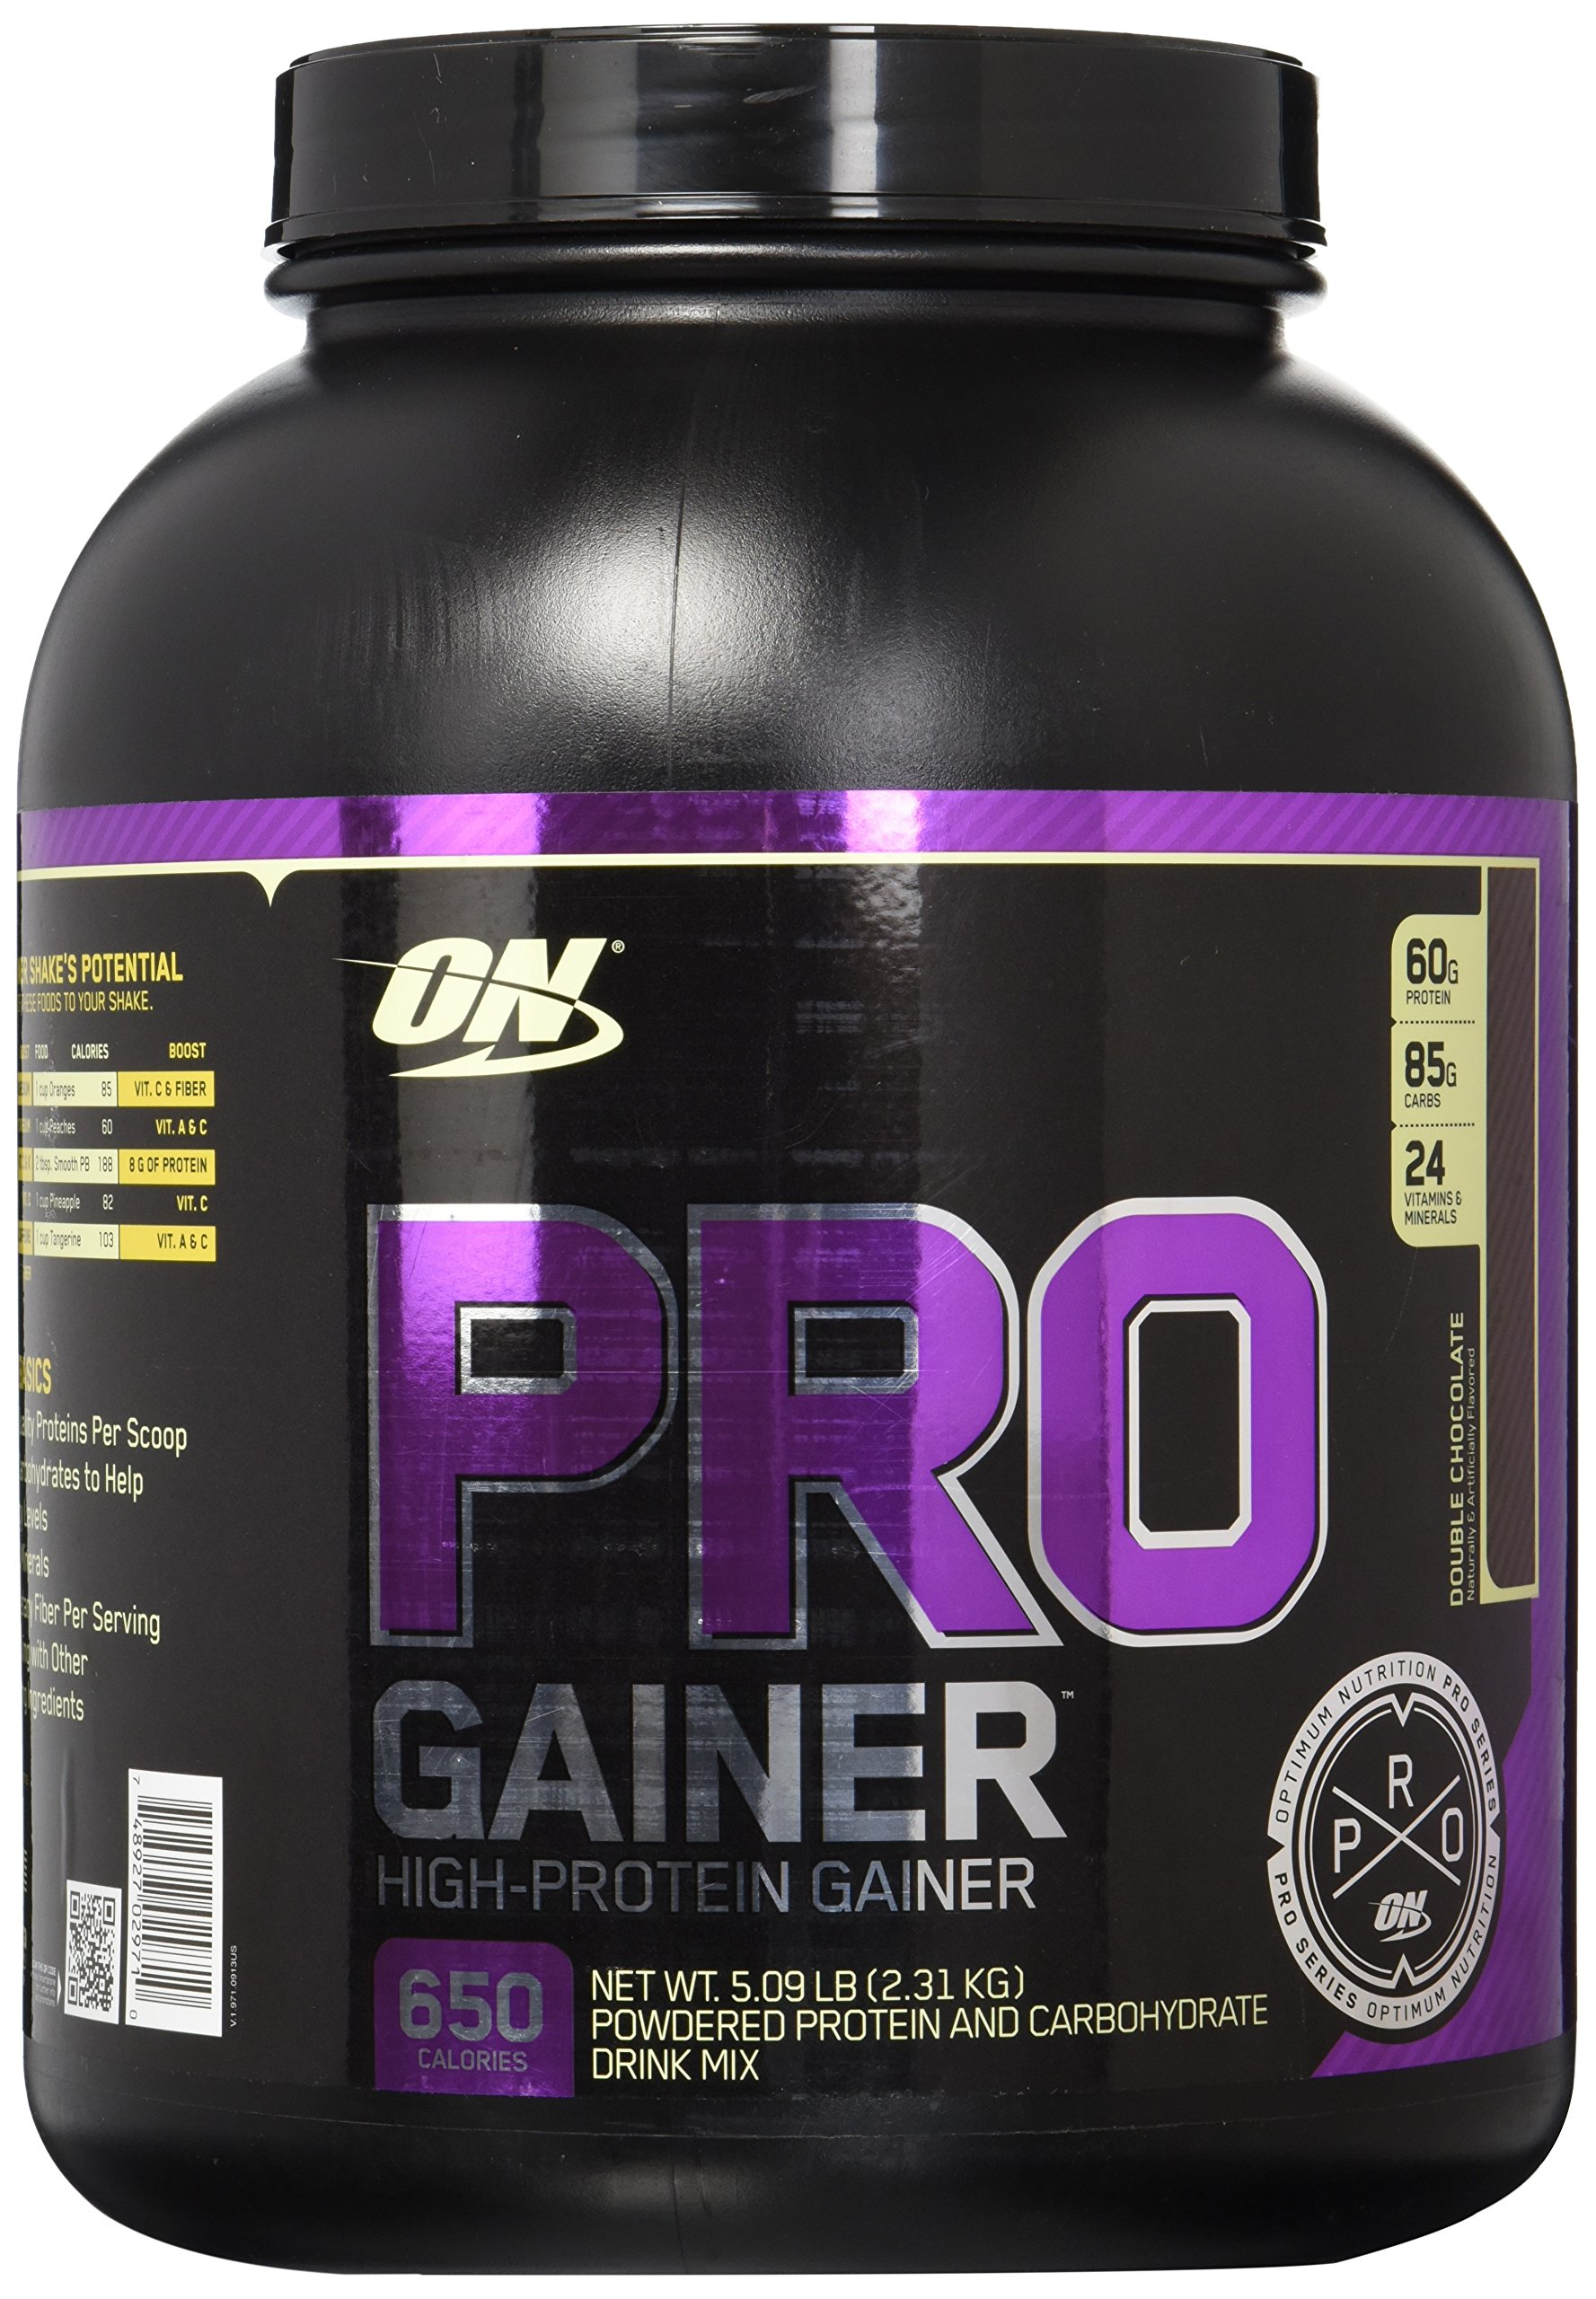 OPTIMUM NUTRITION Pro Gainer Protein Powder, Double Chocolate, 5.09 Pounds